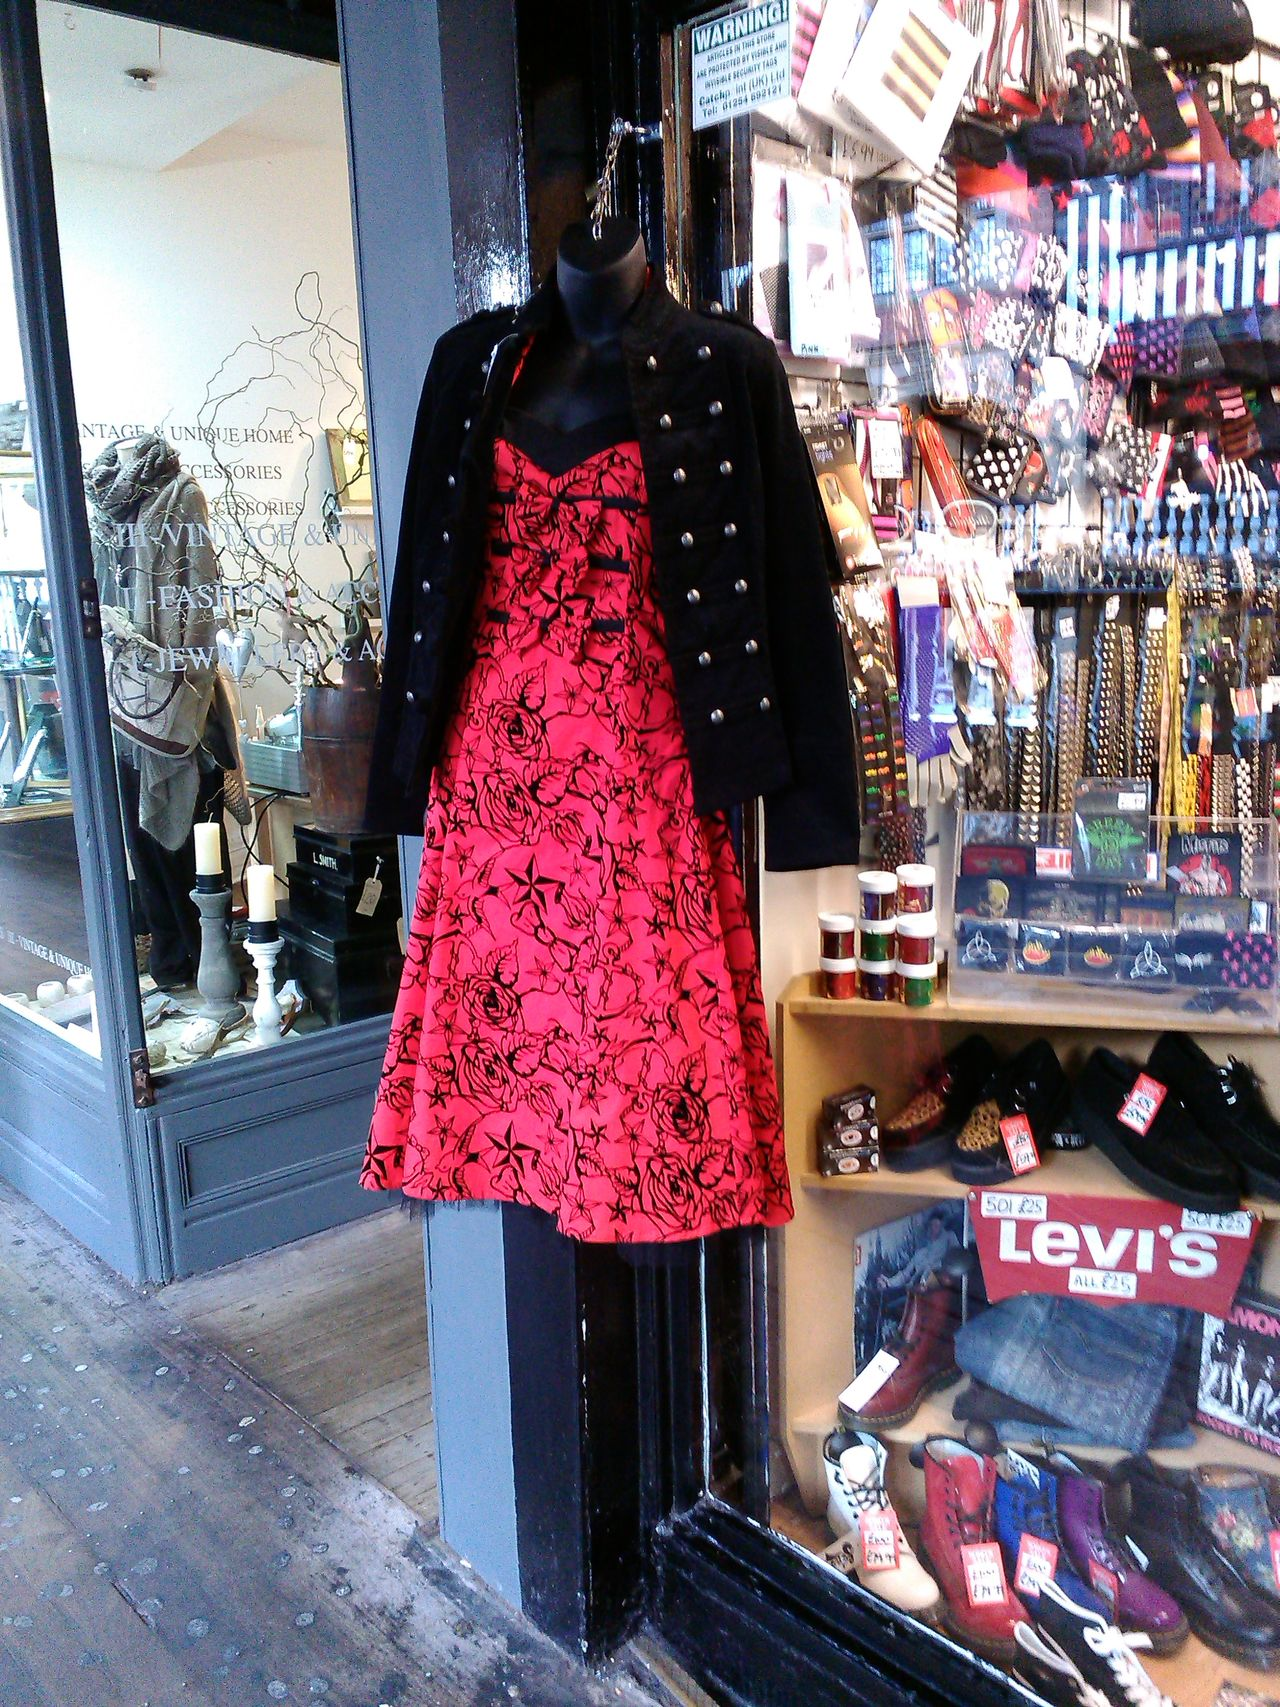 Red dress. Hanging red dress. Garment. Fashion garment. Store. Exterior. Outside. Casual Clothing Dress Dress Hanging Fashion Front View Full Length Hanging Out Jacket Lifestyles Red Shop Shop Window Standing Vintage Clothing. Window Display. Young Women